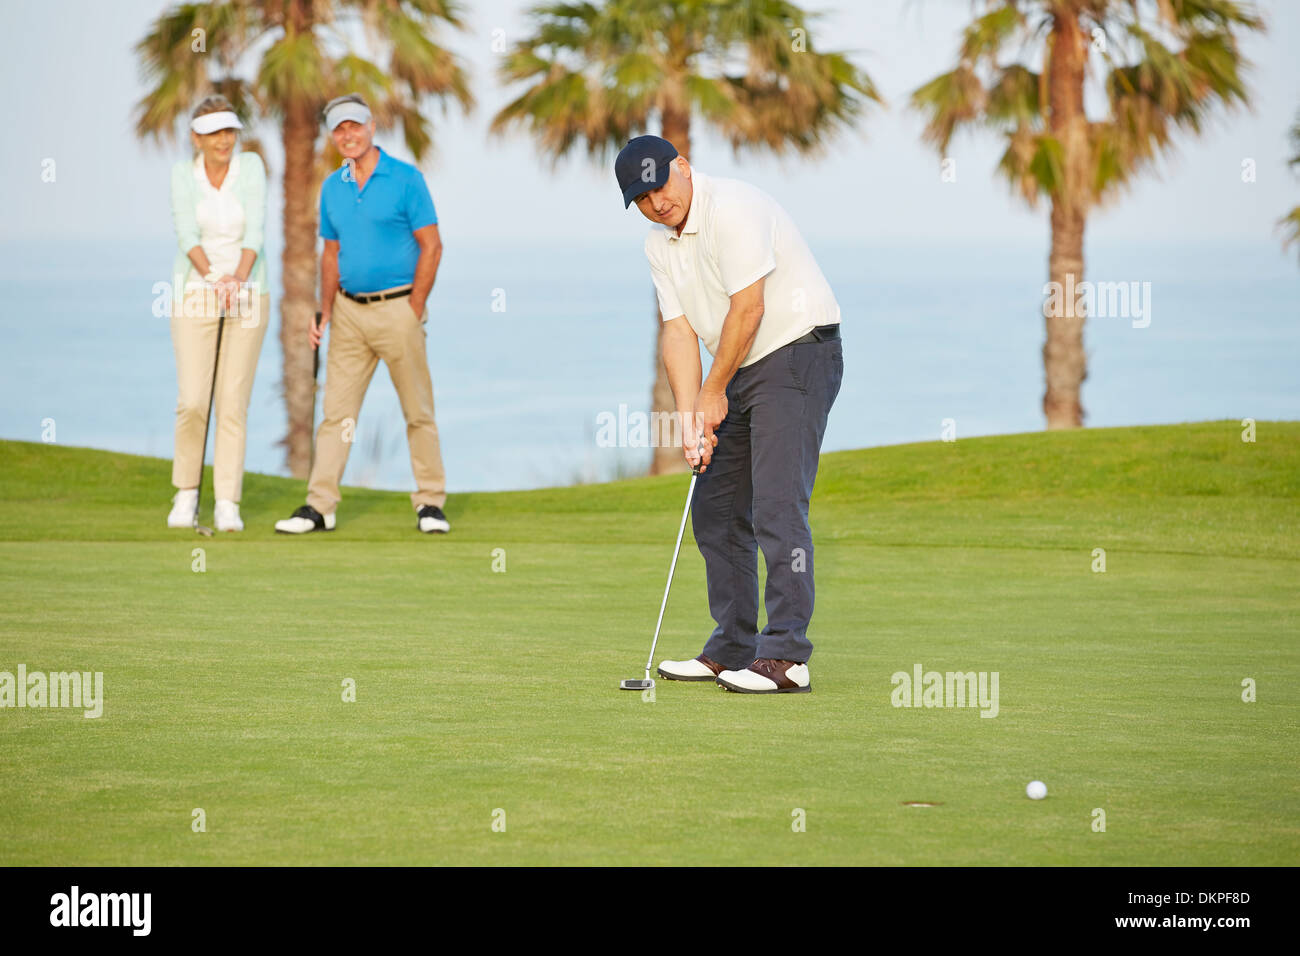 Senior friends playing golf on course - Stock Image